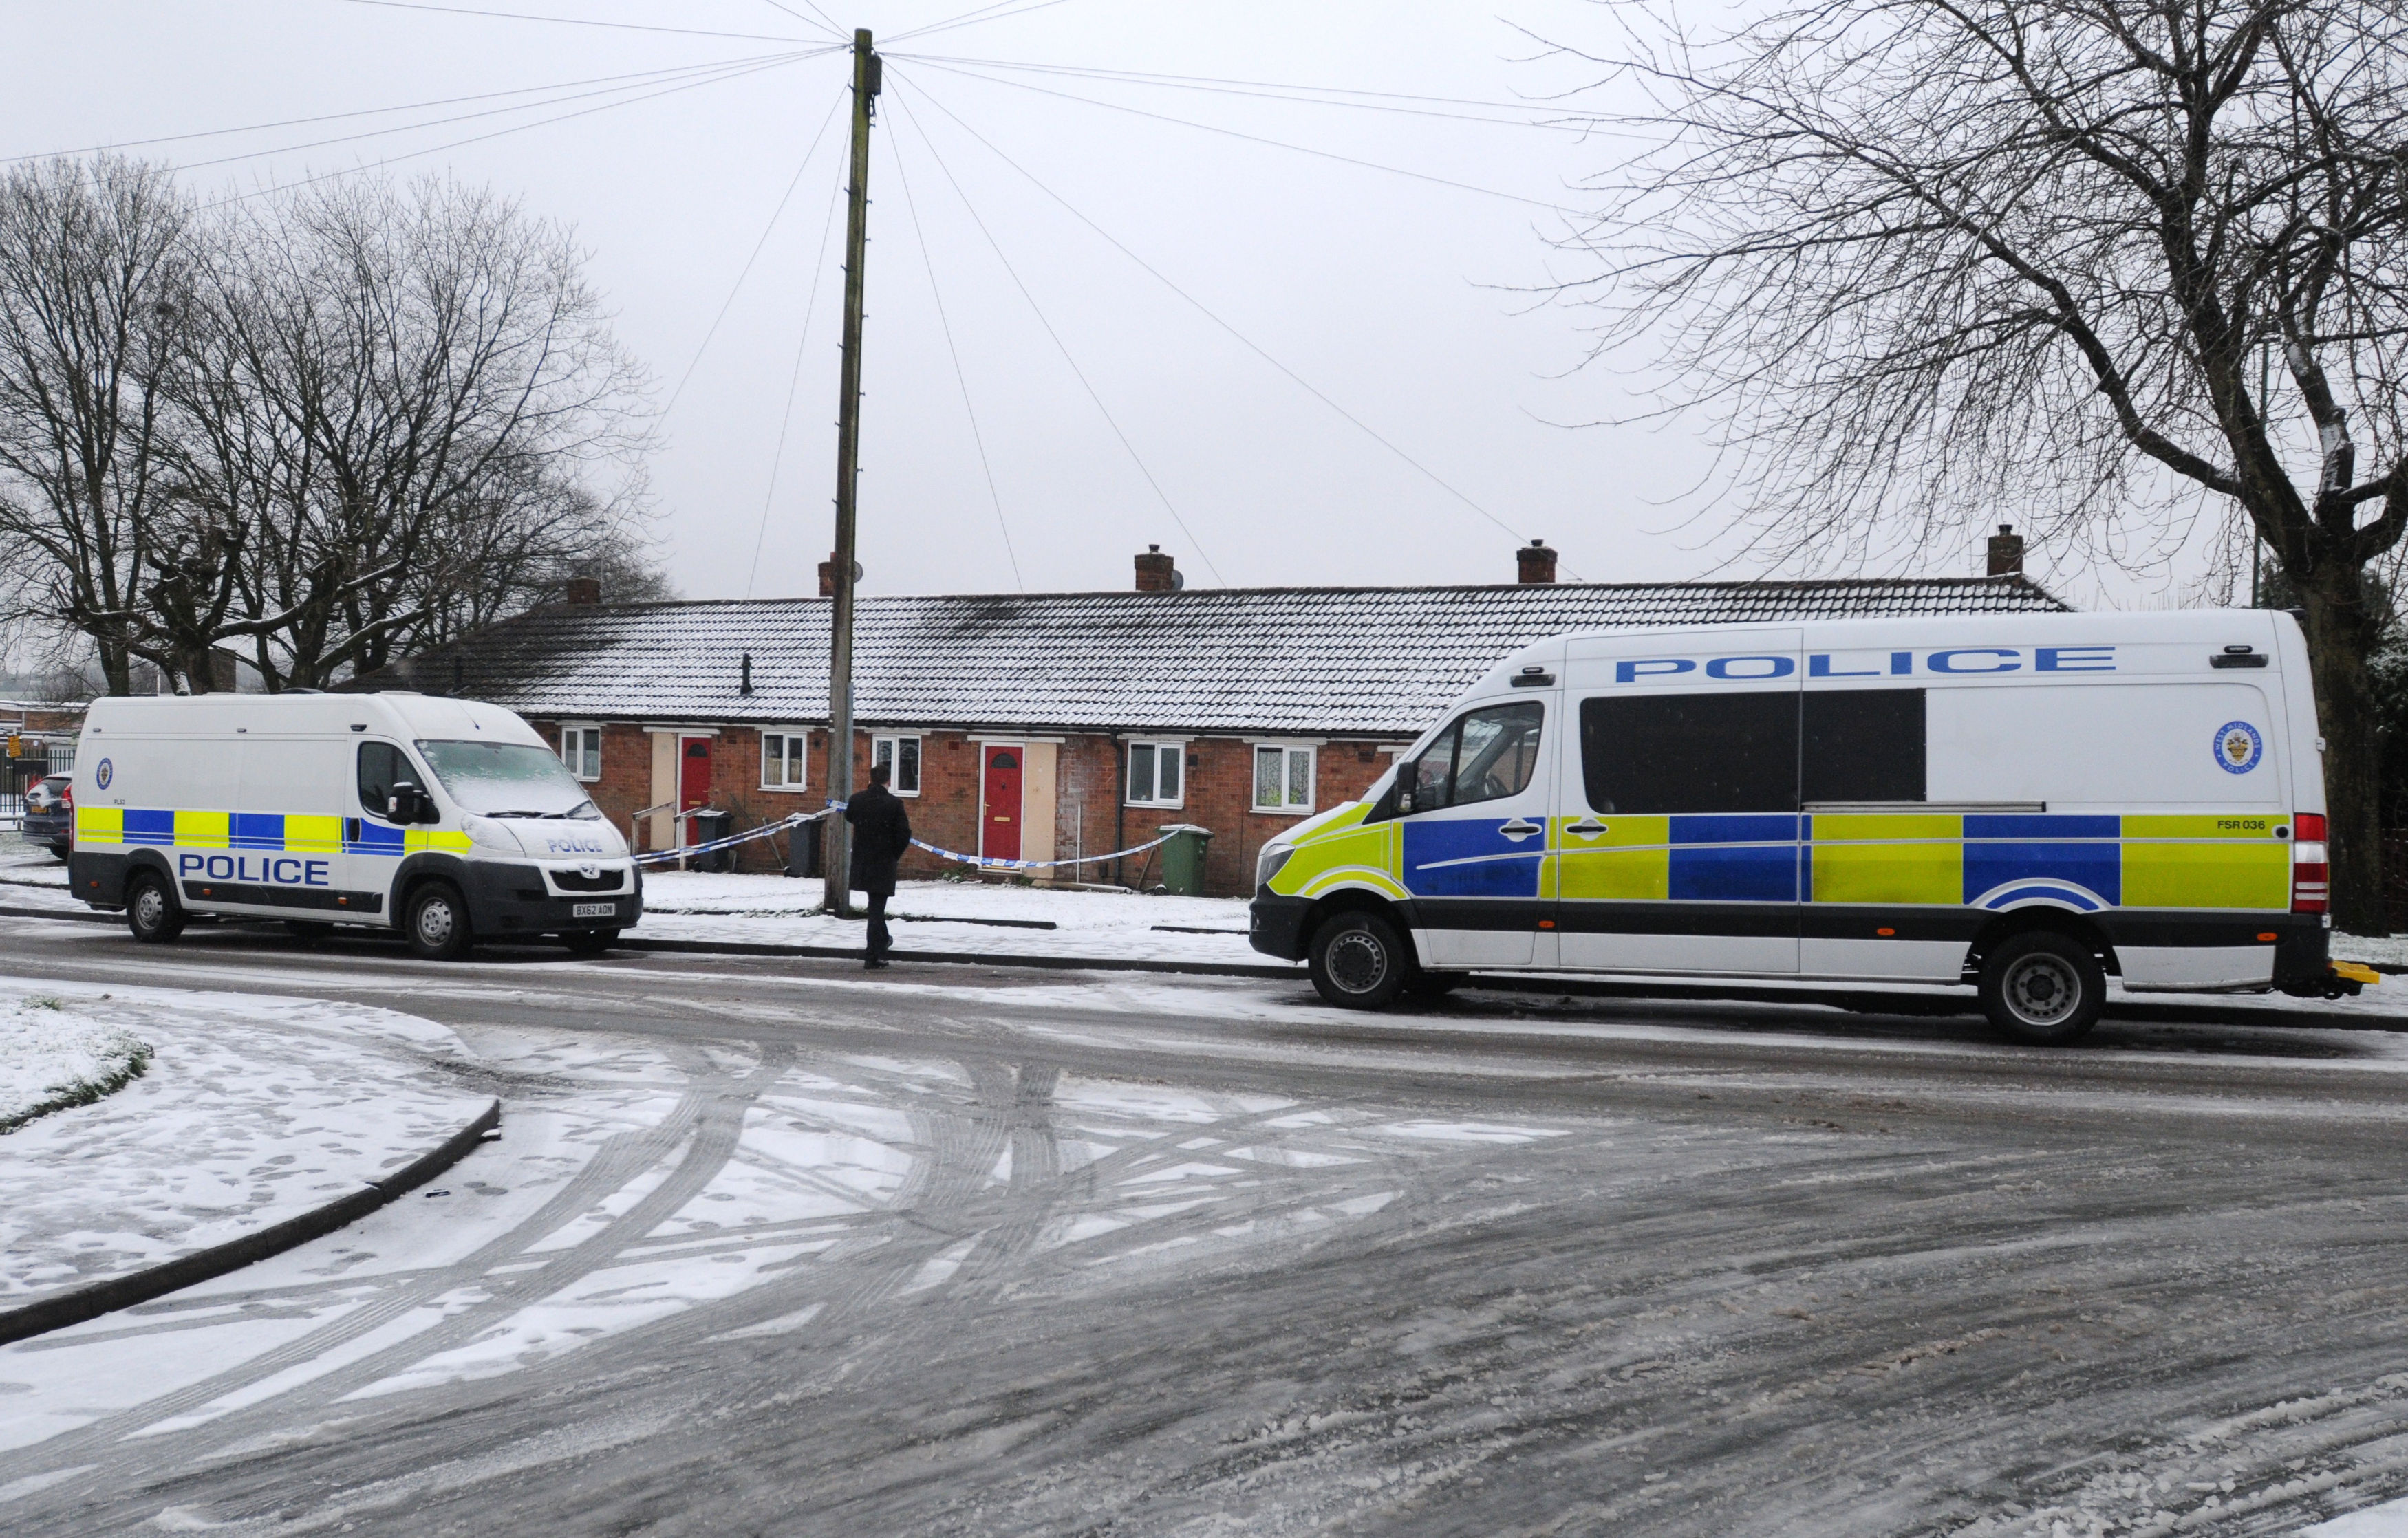 Brownhills: murdered 8 year old girl suspect arrested